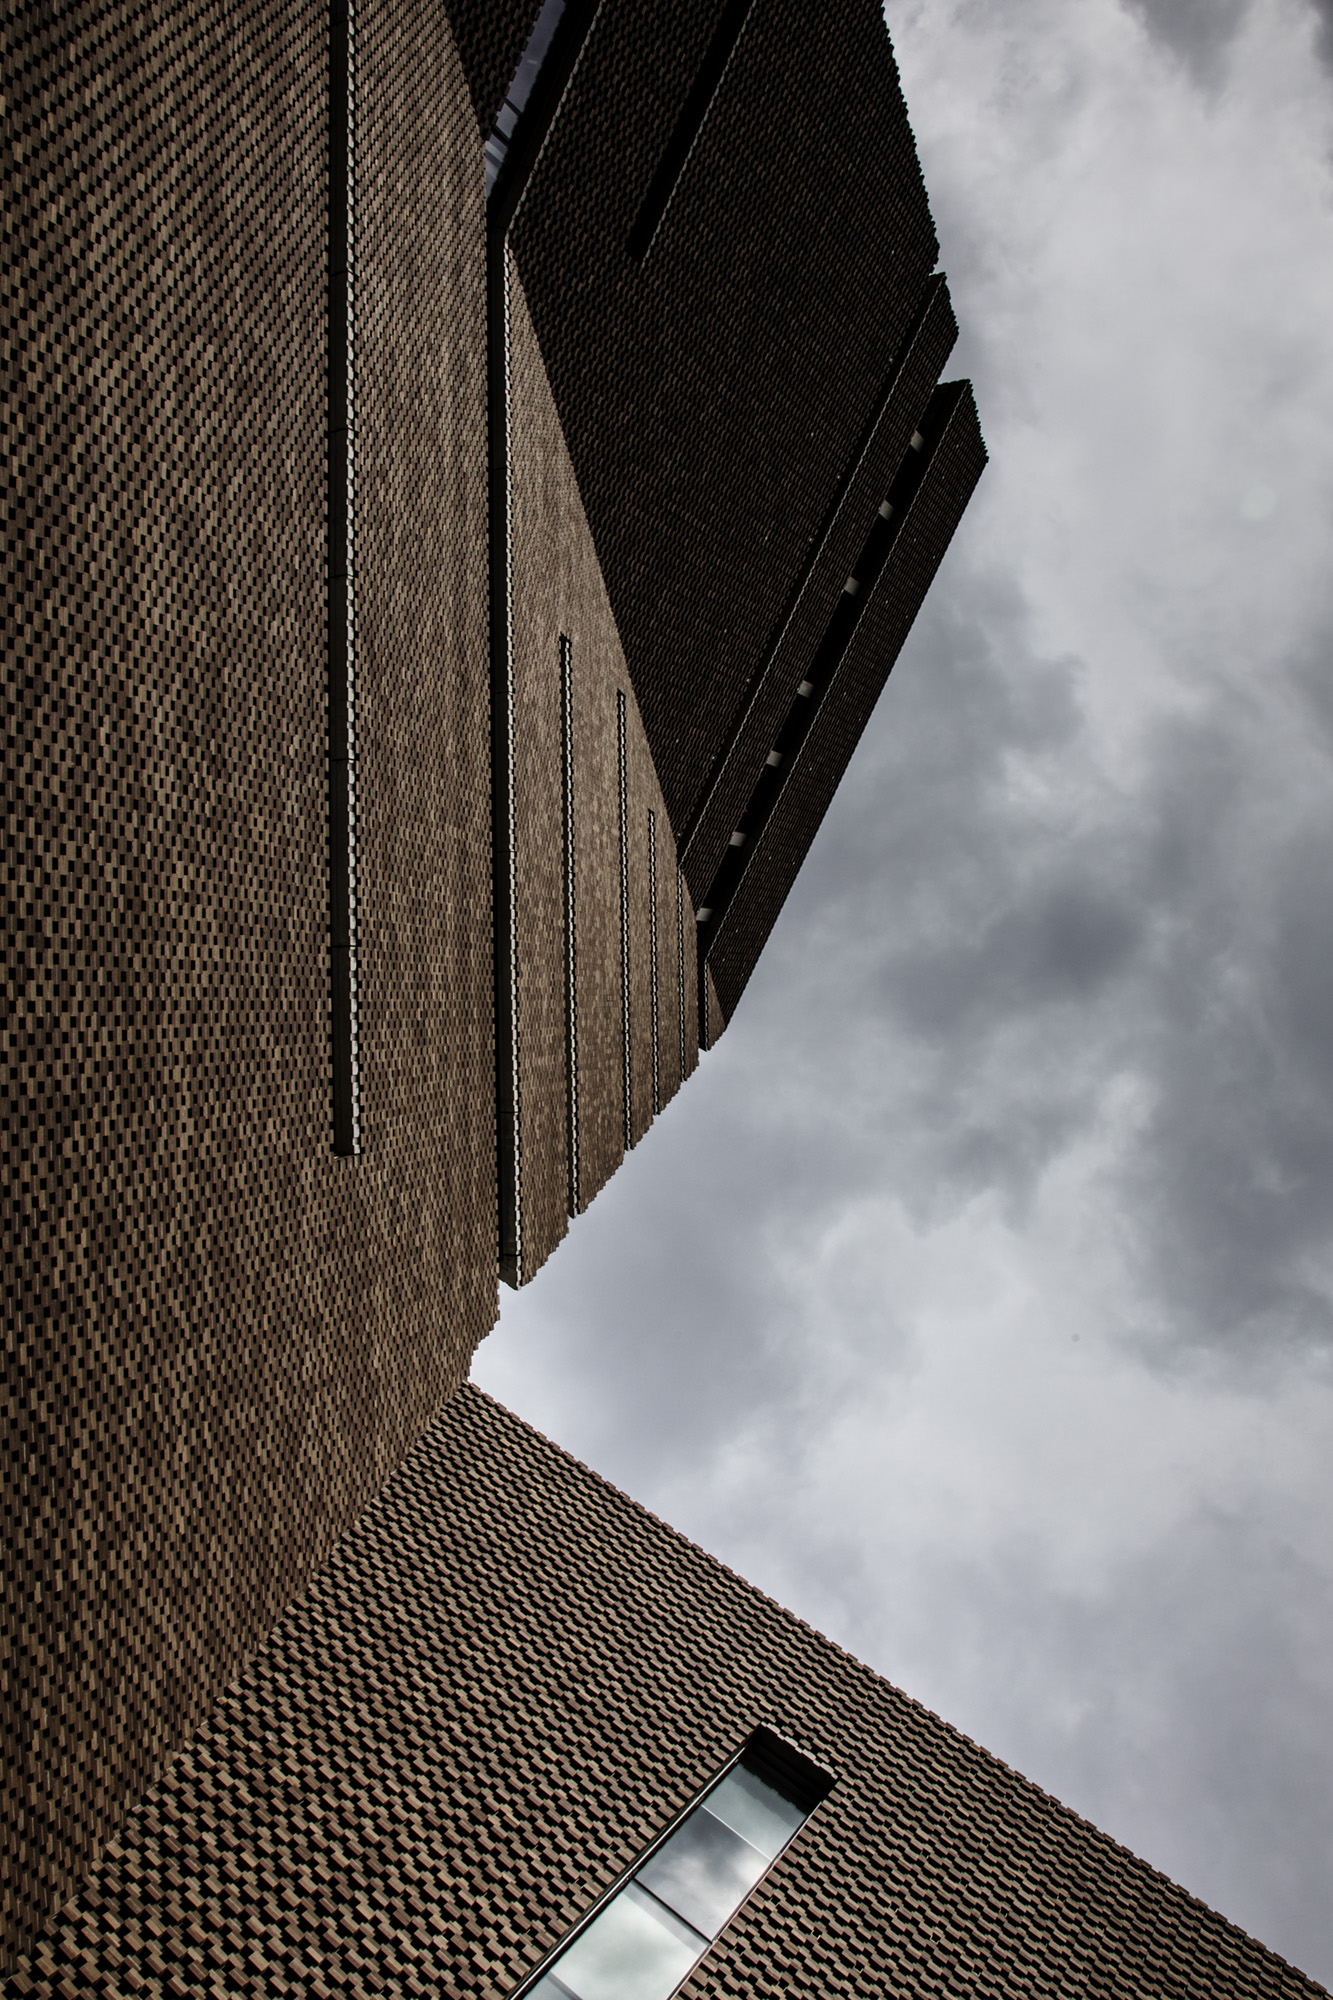 London_Architectural_Photographer_The_Tate_Modern-002.jpg